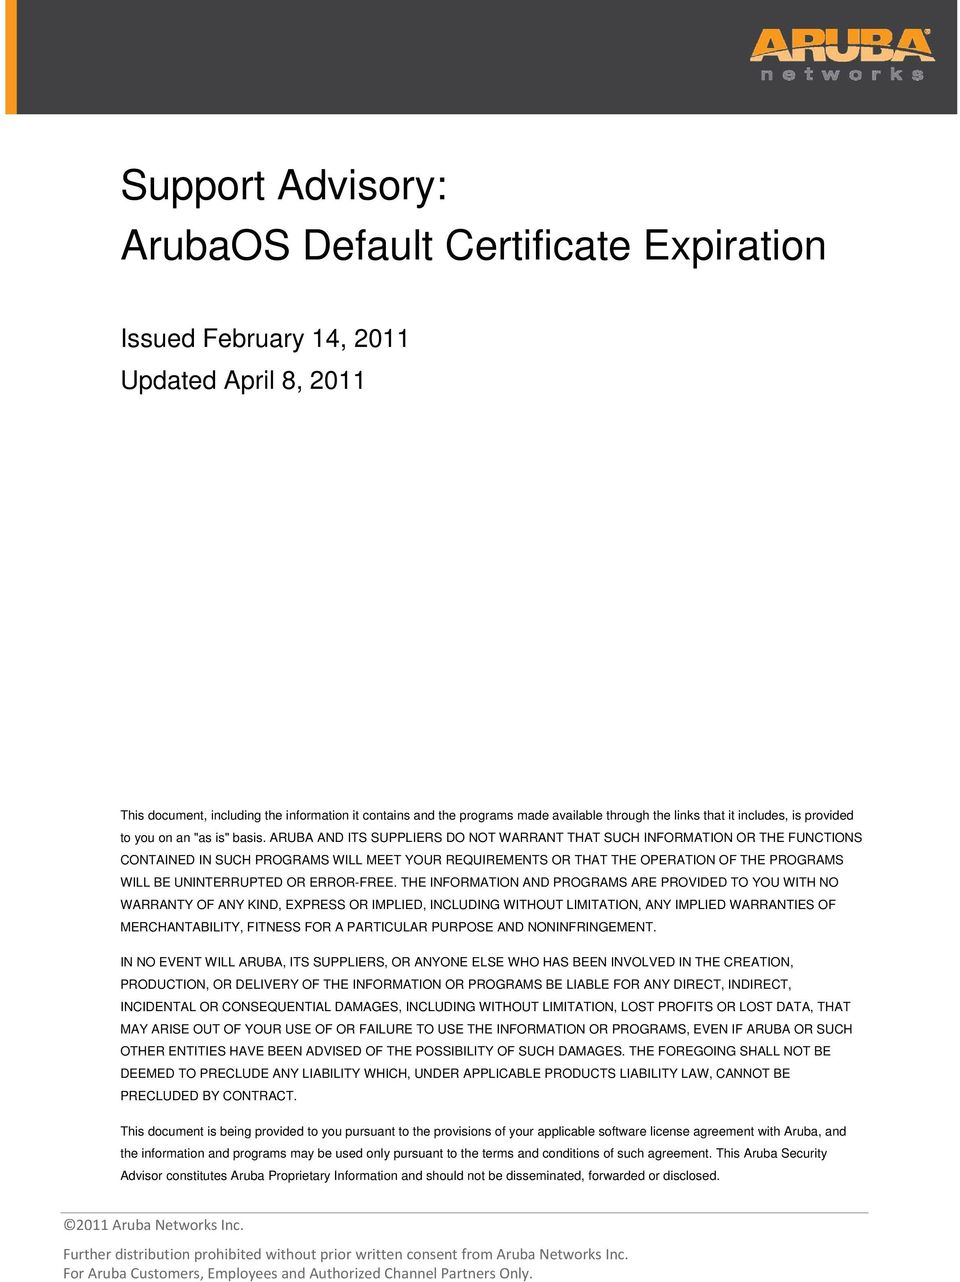 Support Advisory: ArubaOS Default Certificate Expiration - PDF